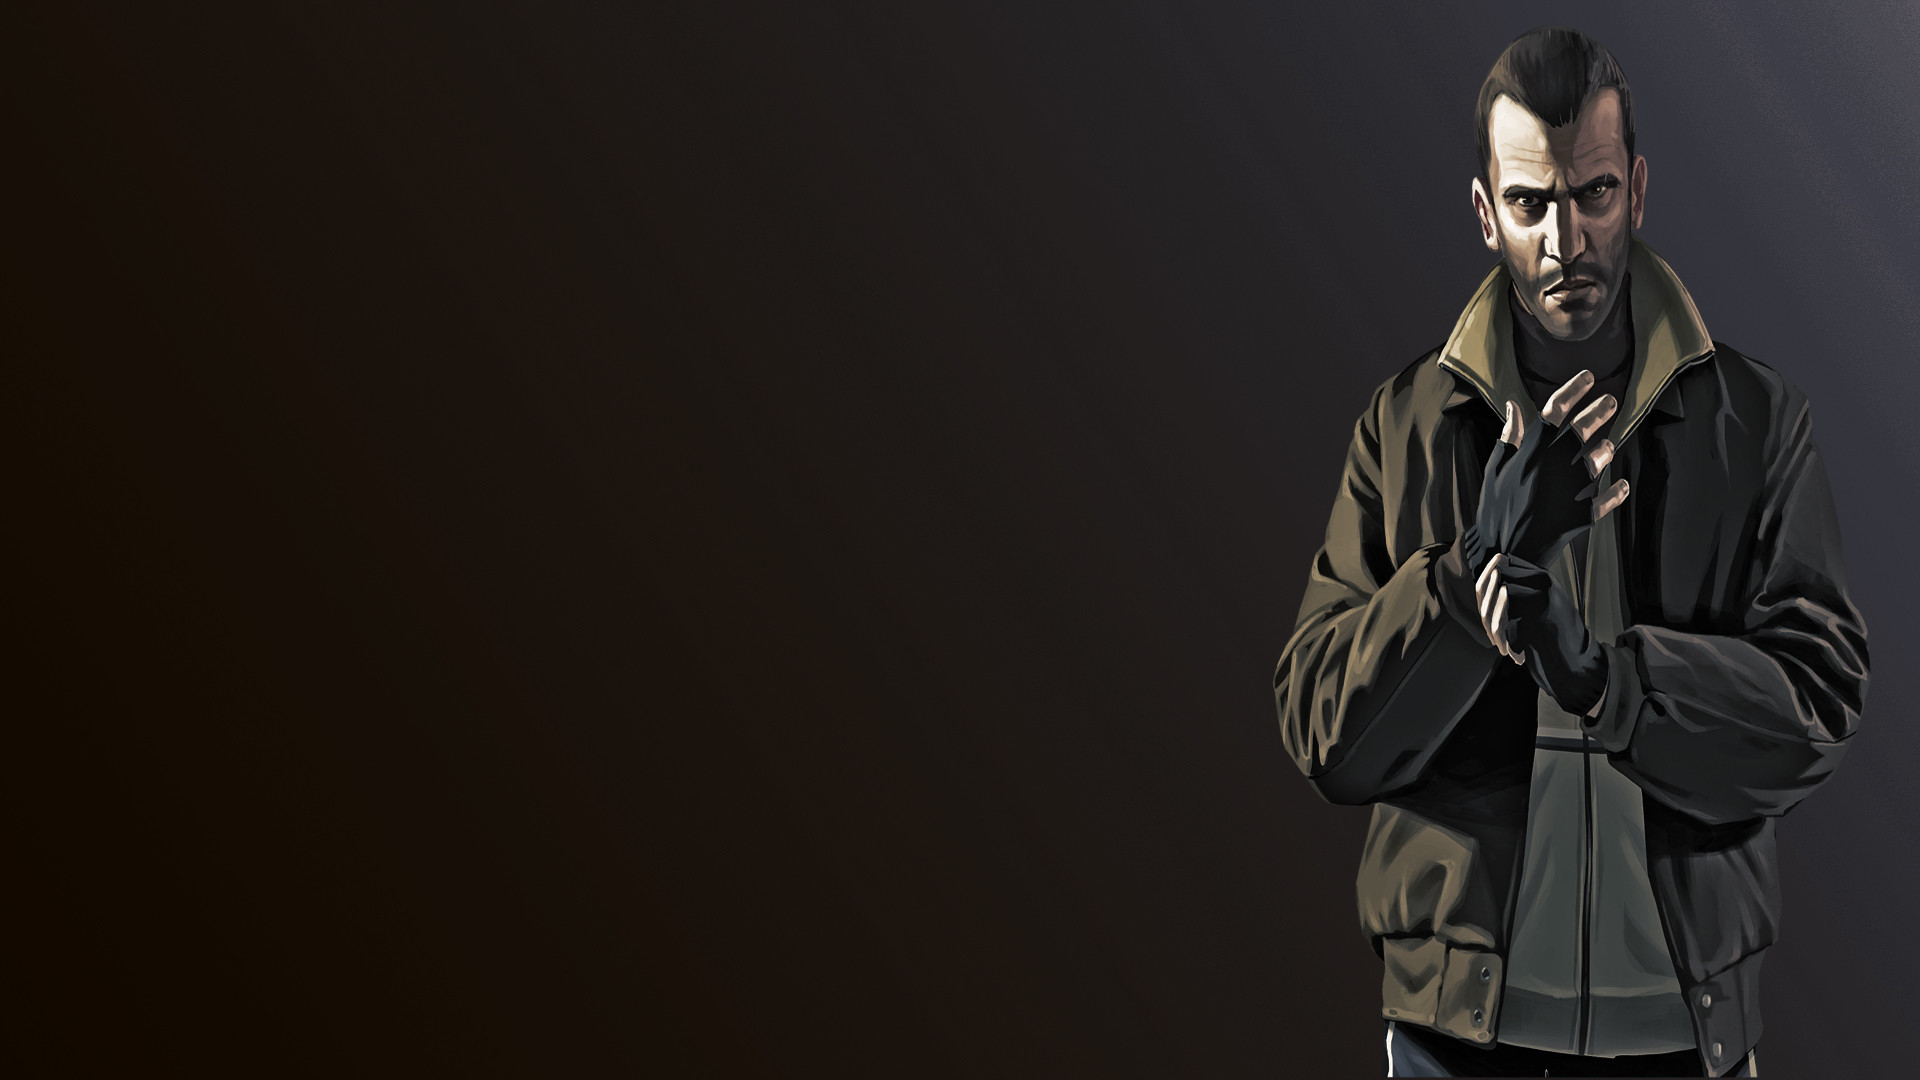 Res: 1920x1080, ... Niko Bellic (Grand Theft Auto IV Hero) by stalkersdxx